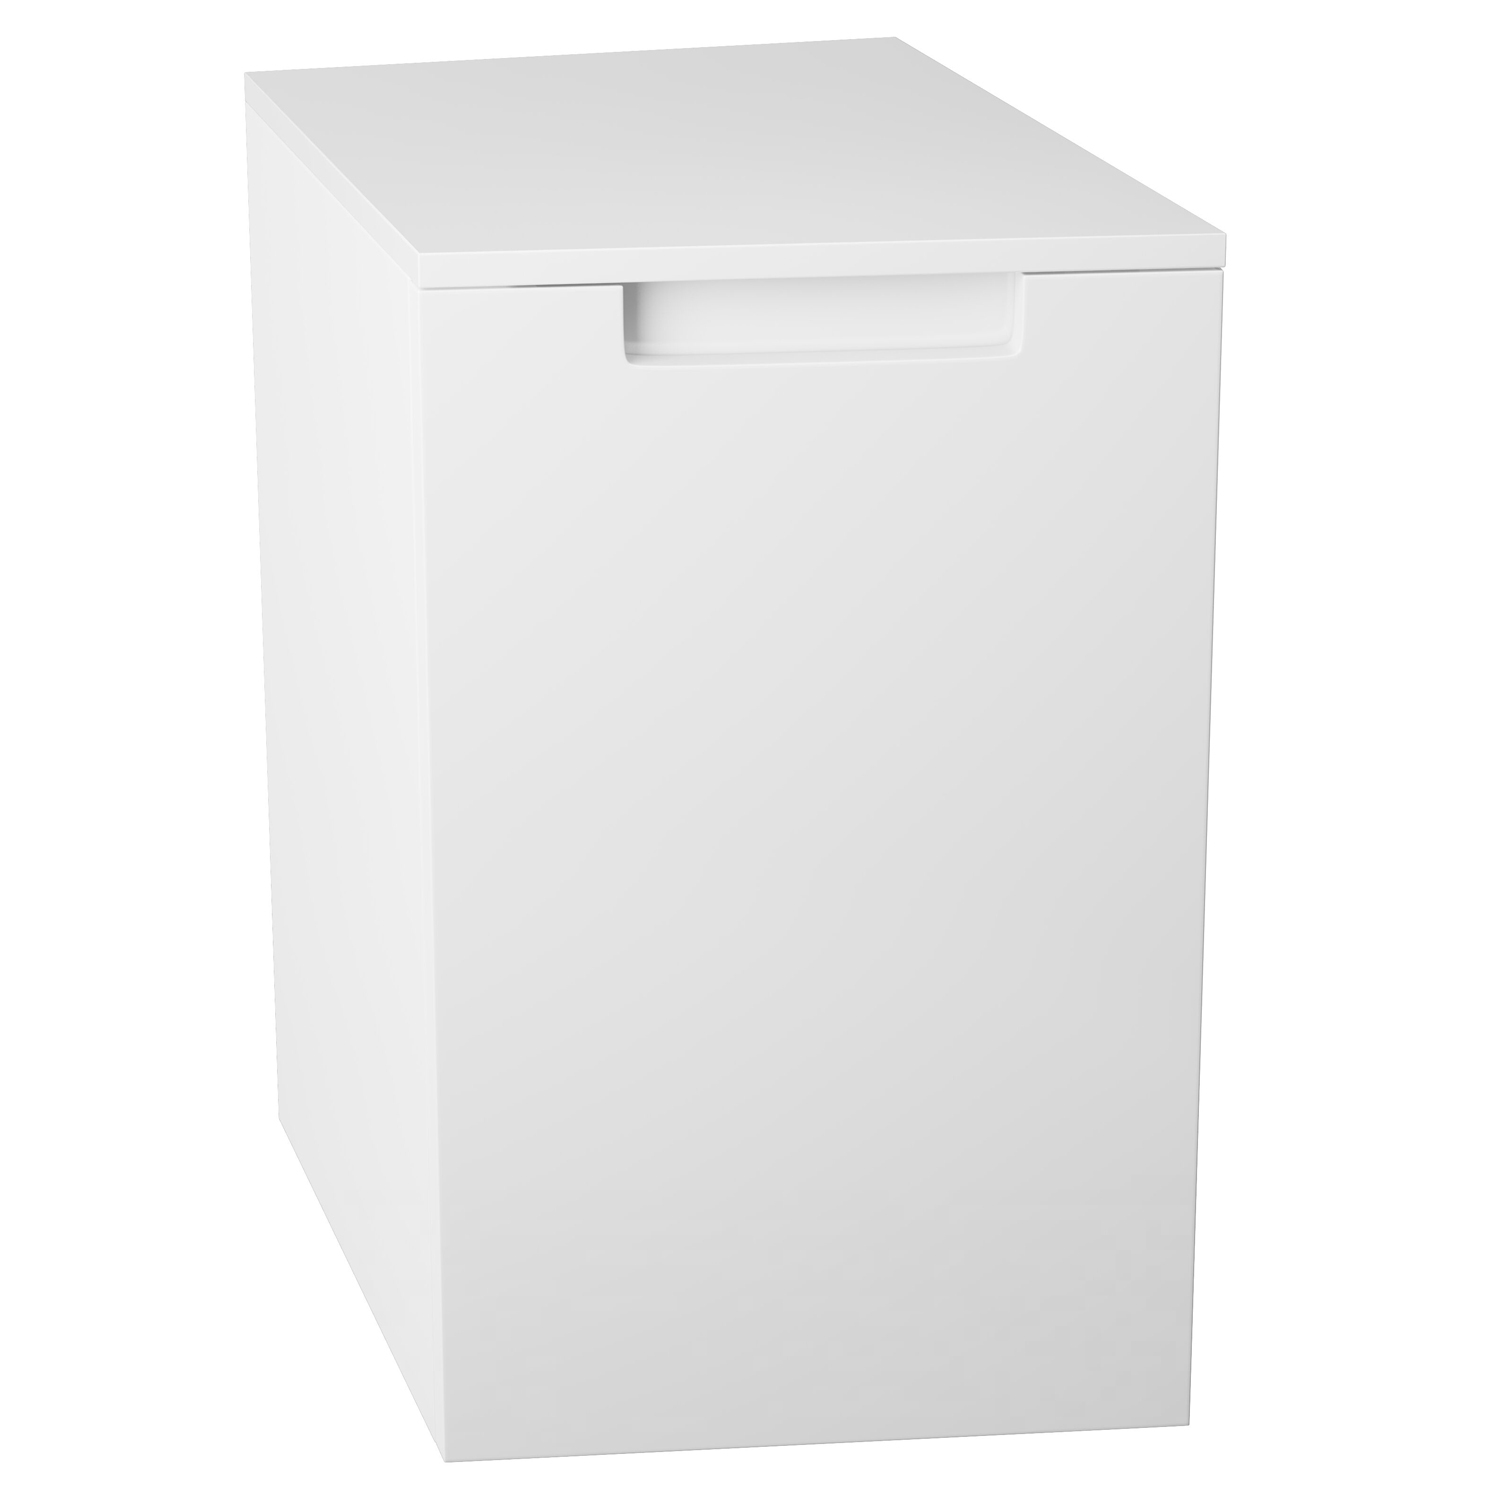 Cali Henley Left Handed Side Cabinet 300mm Wide - Gloss White